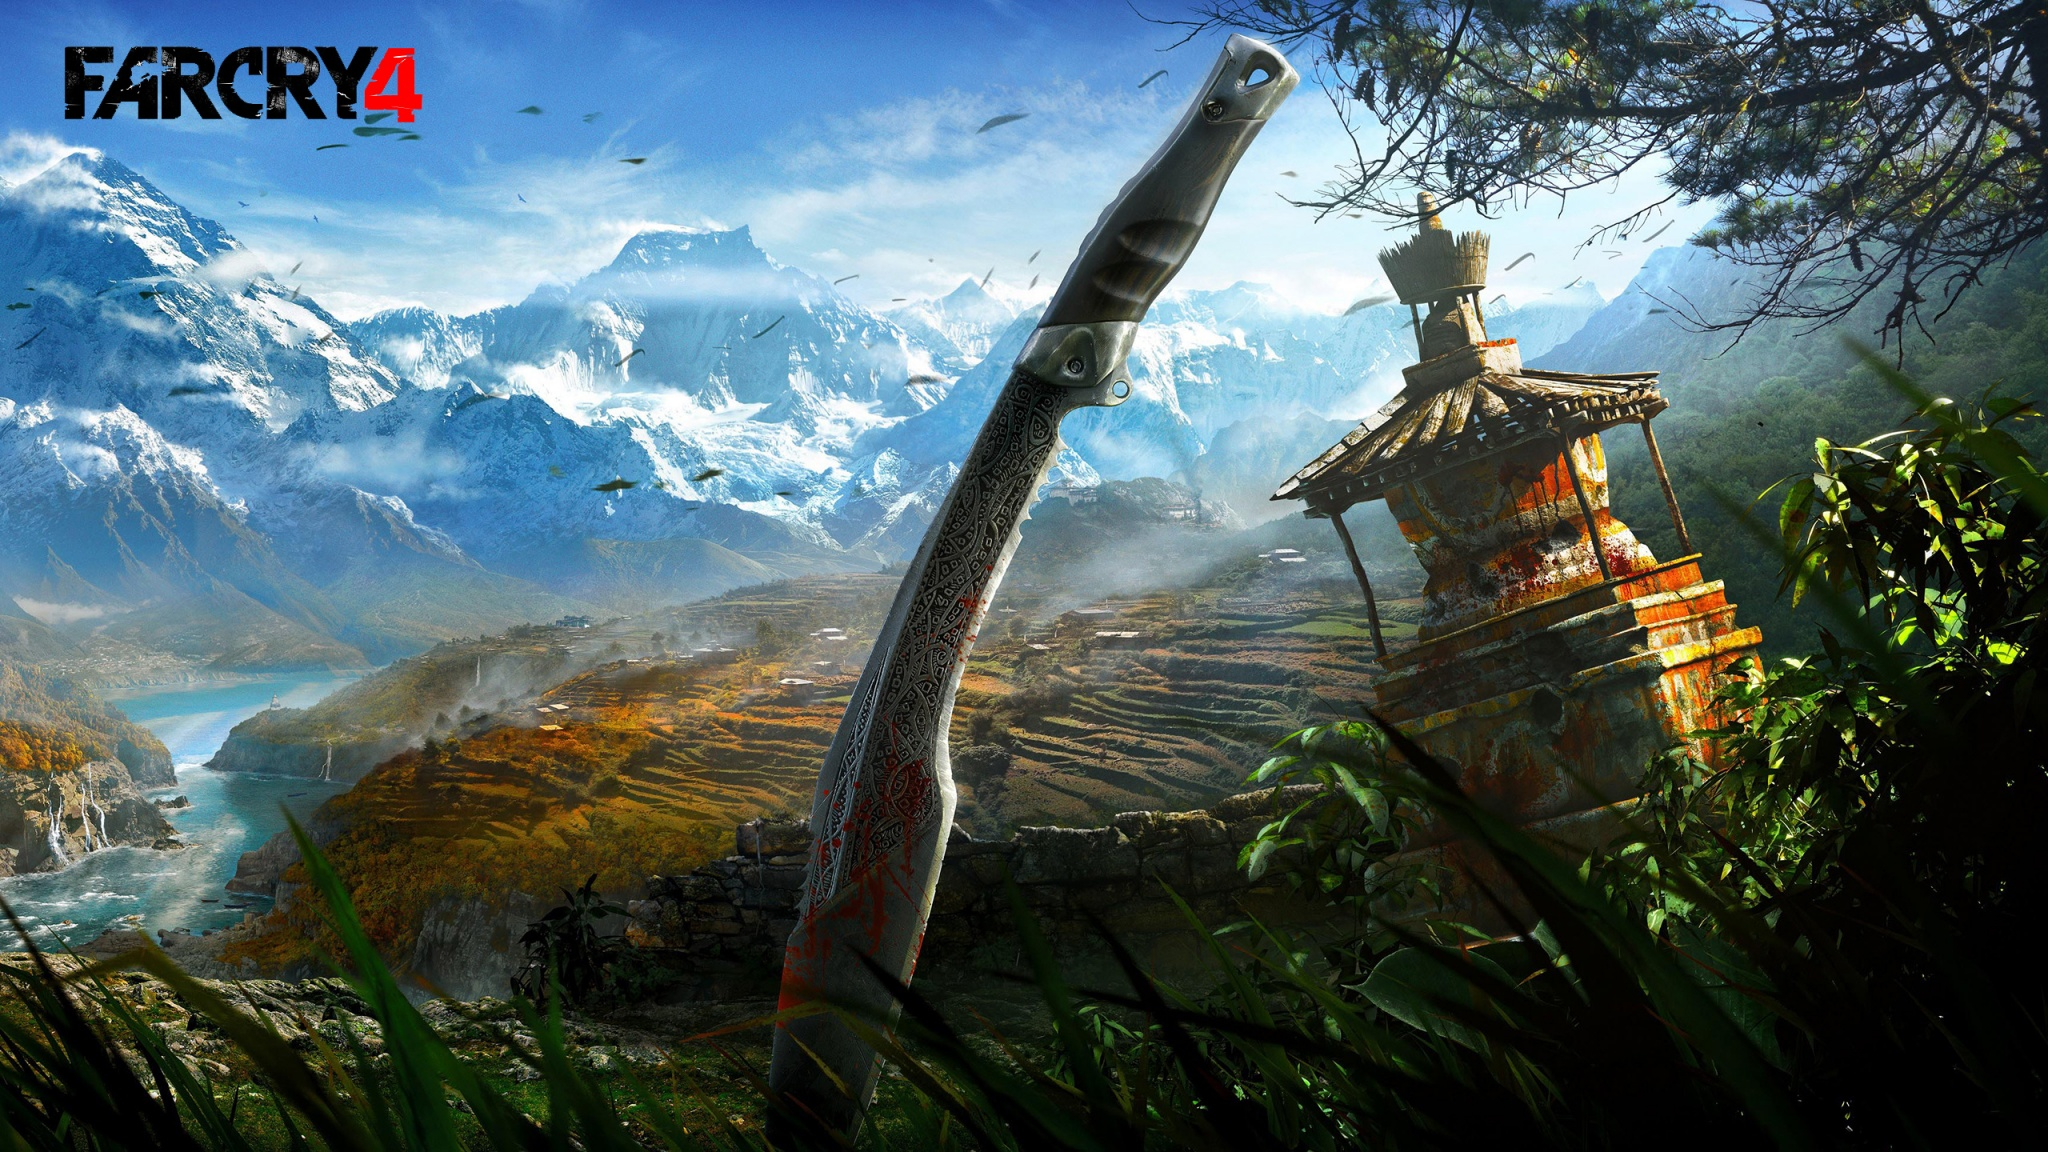 Far Cry 4 Poster Wallpapers   2048x1152   1070821 2048x1152